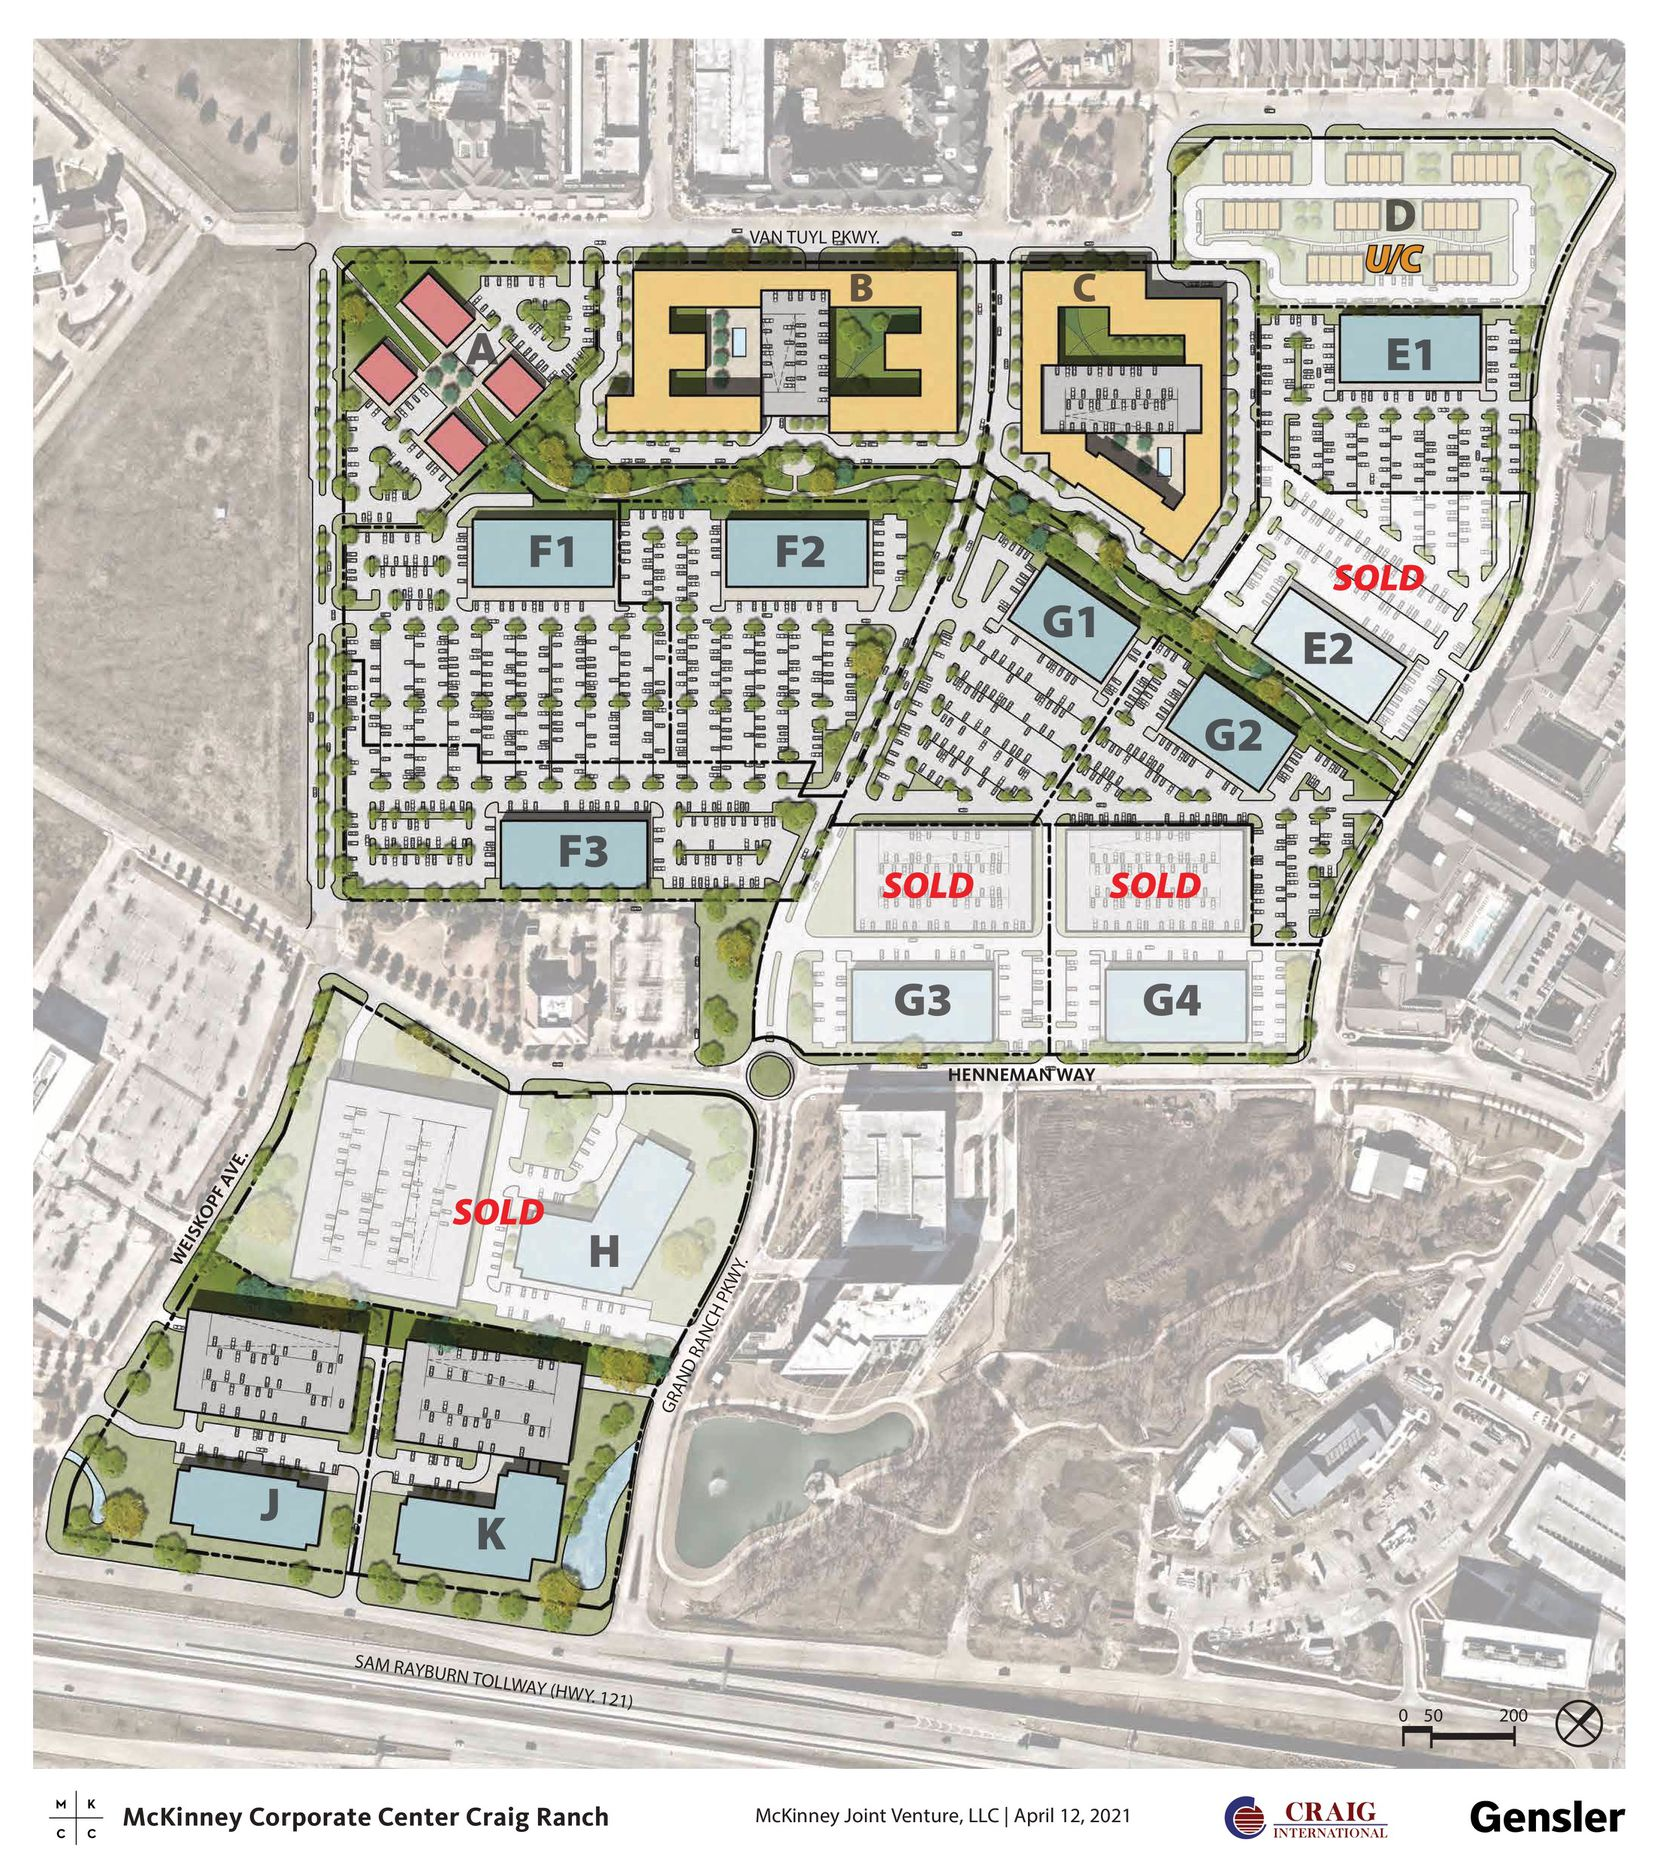 A rendering of McKinney Corporate Center Craig Ranch where Independent Financial has purchased an additional 17 acres of land for development.